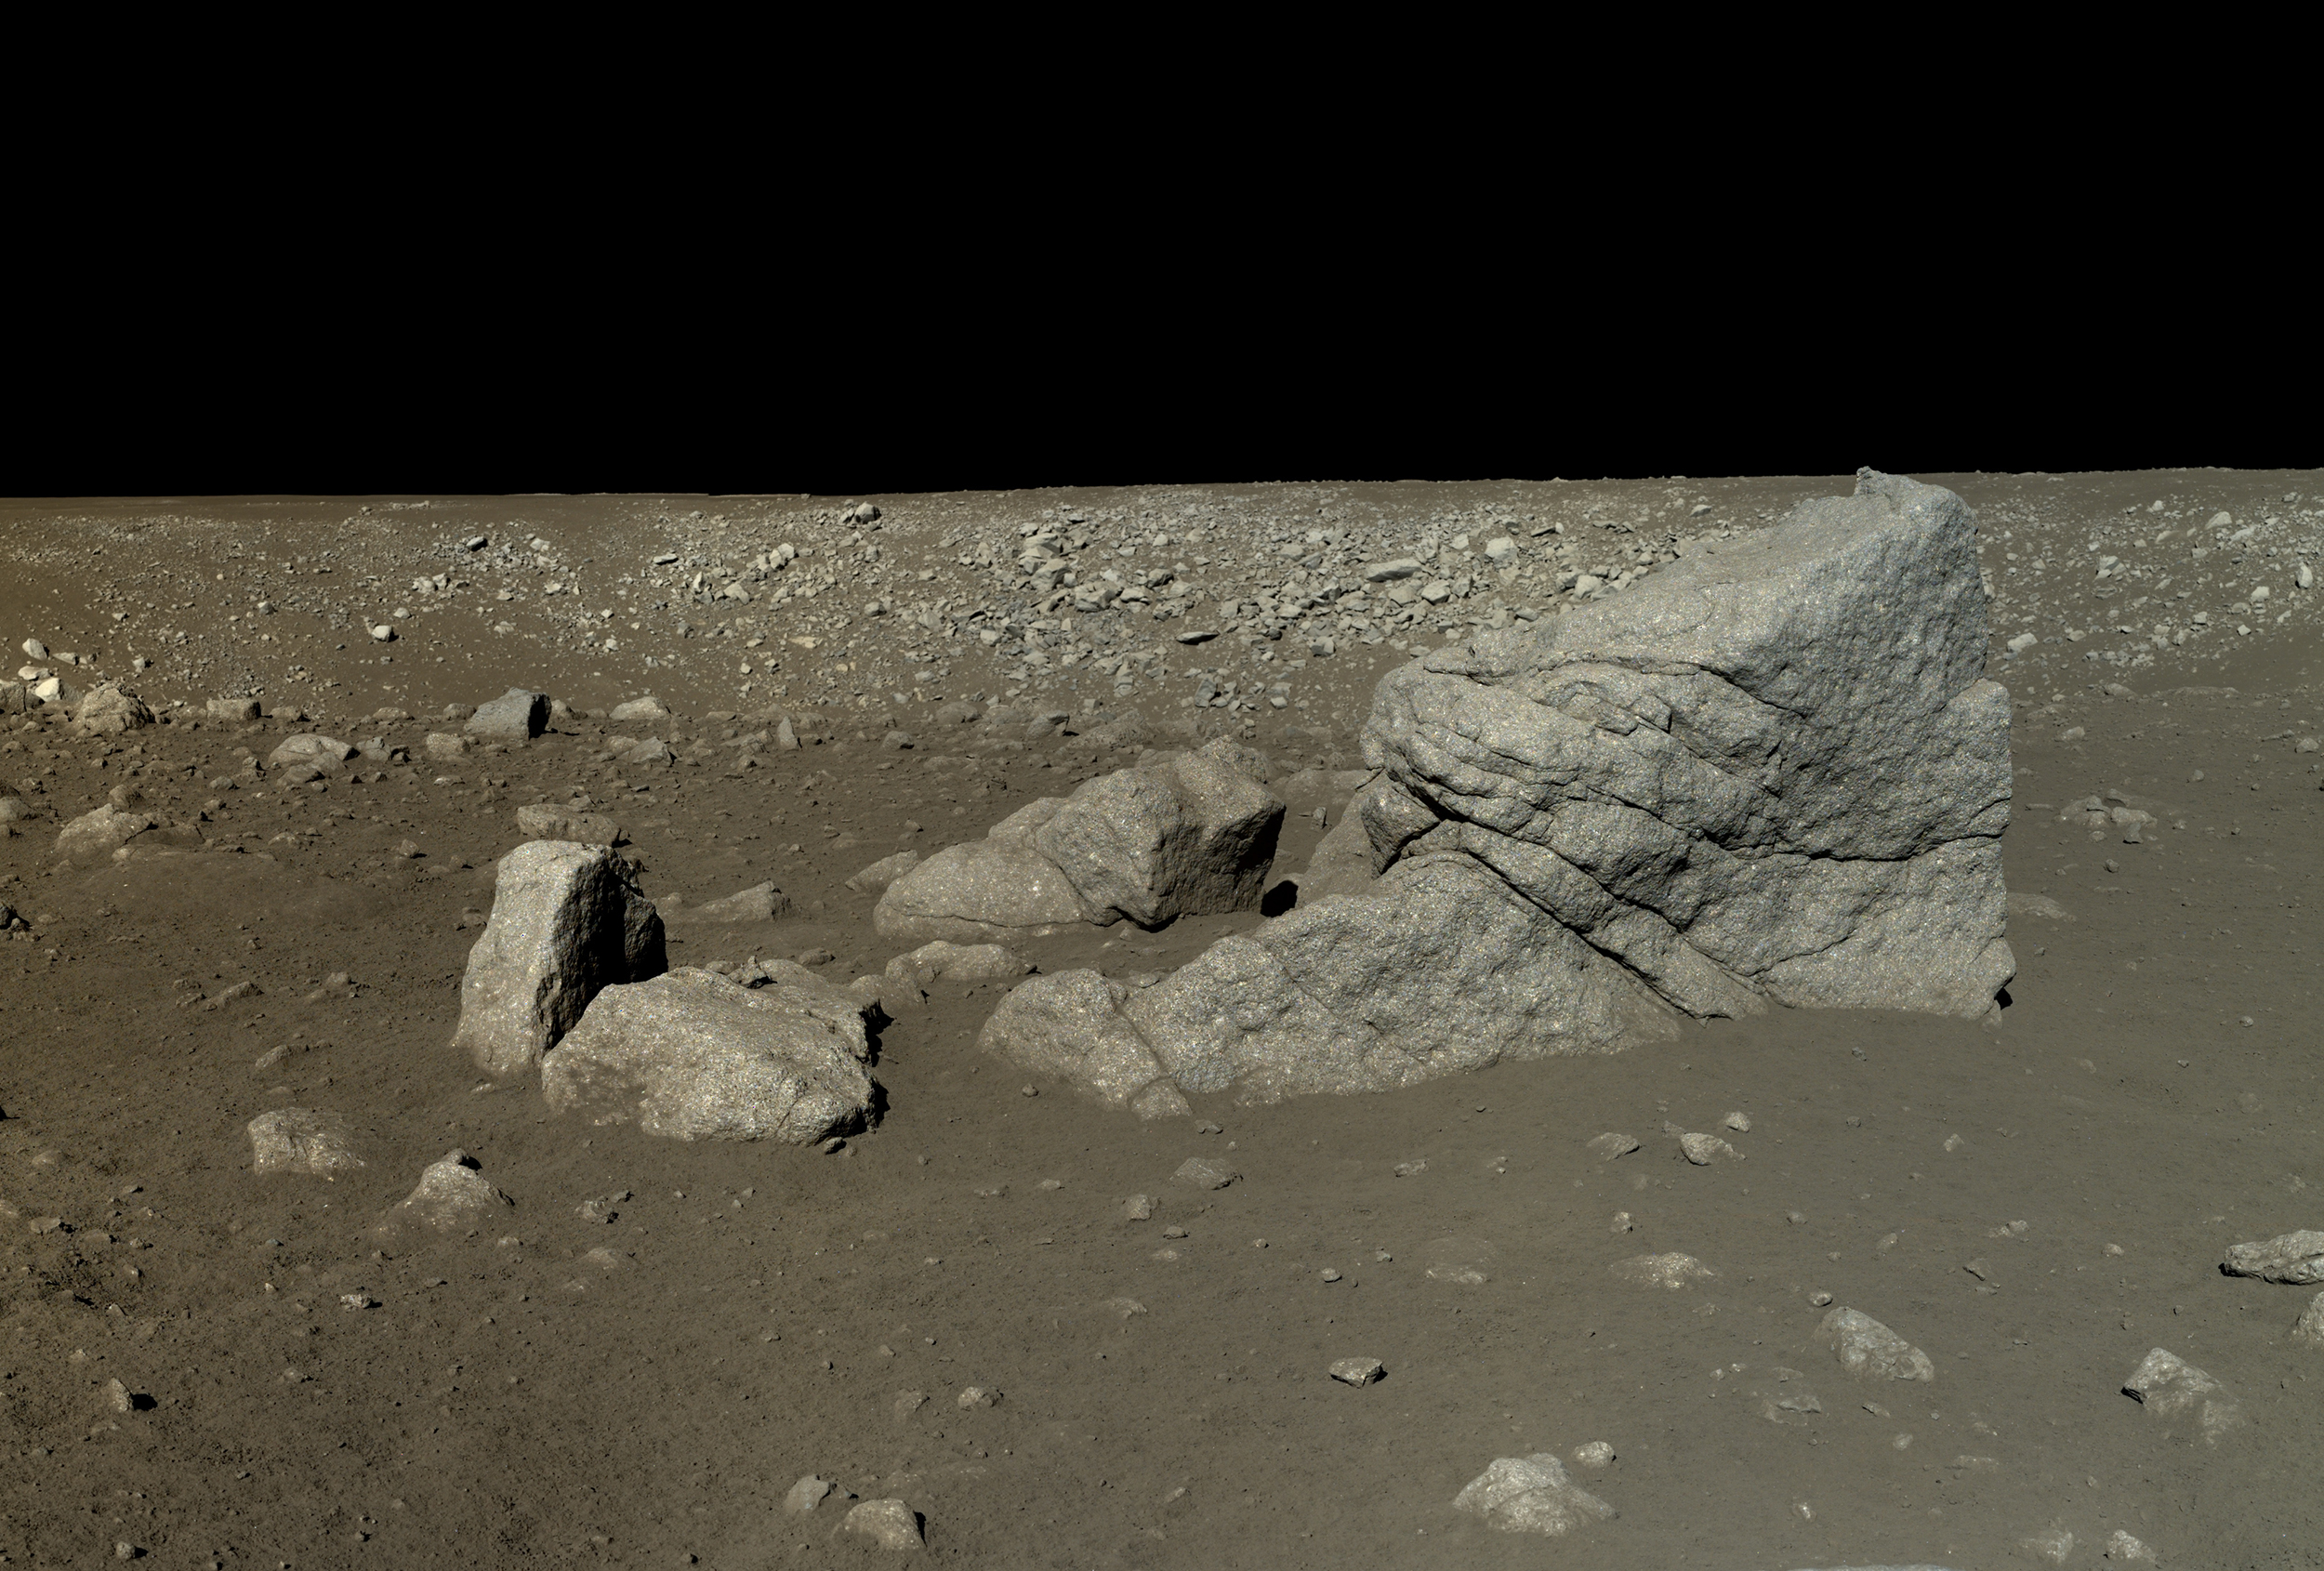 This is a mosaic of six images captured by the Yutu rover on Jan. 13, 2014, after it had driven southwest of the lander to visit a large block of impact ejecta that the team named Long Yan (Pyramid Rock).